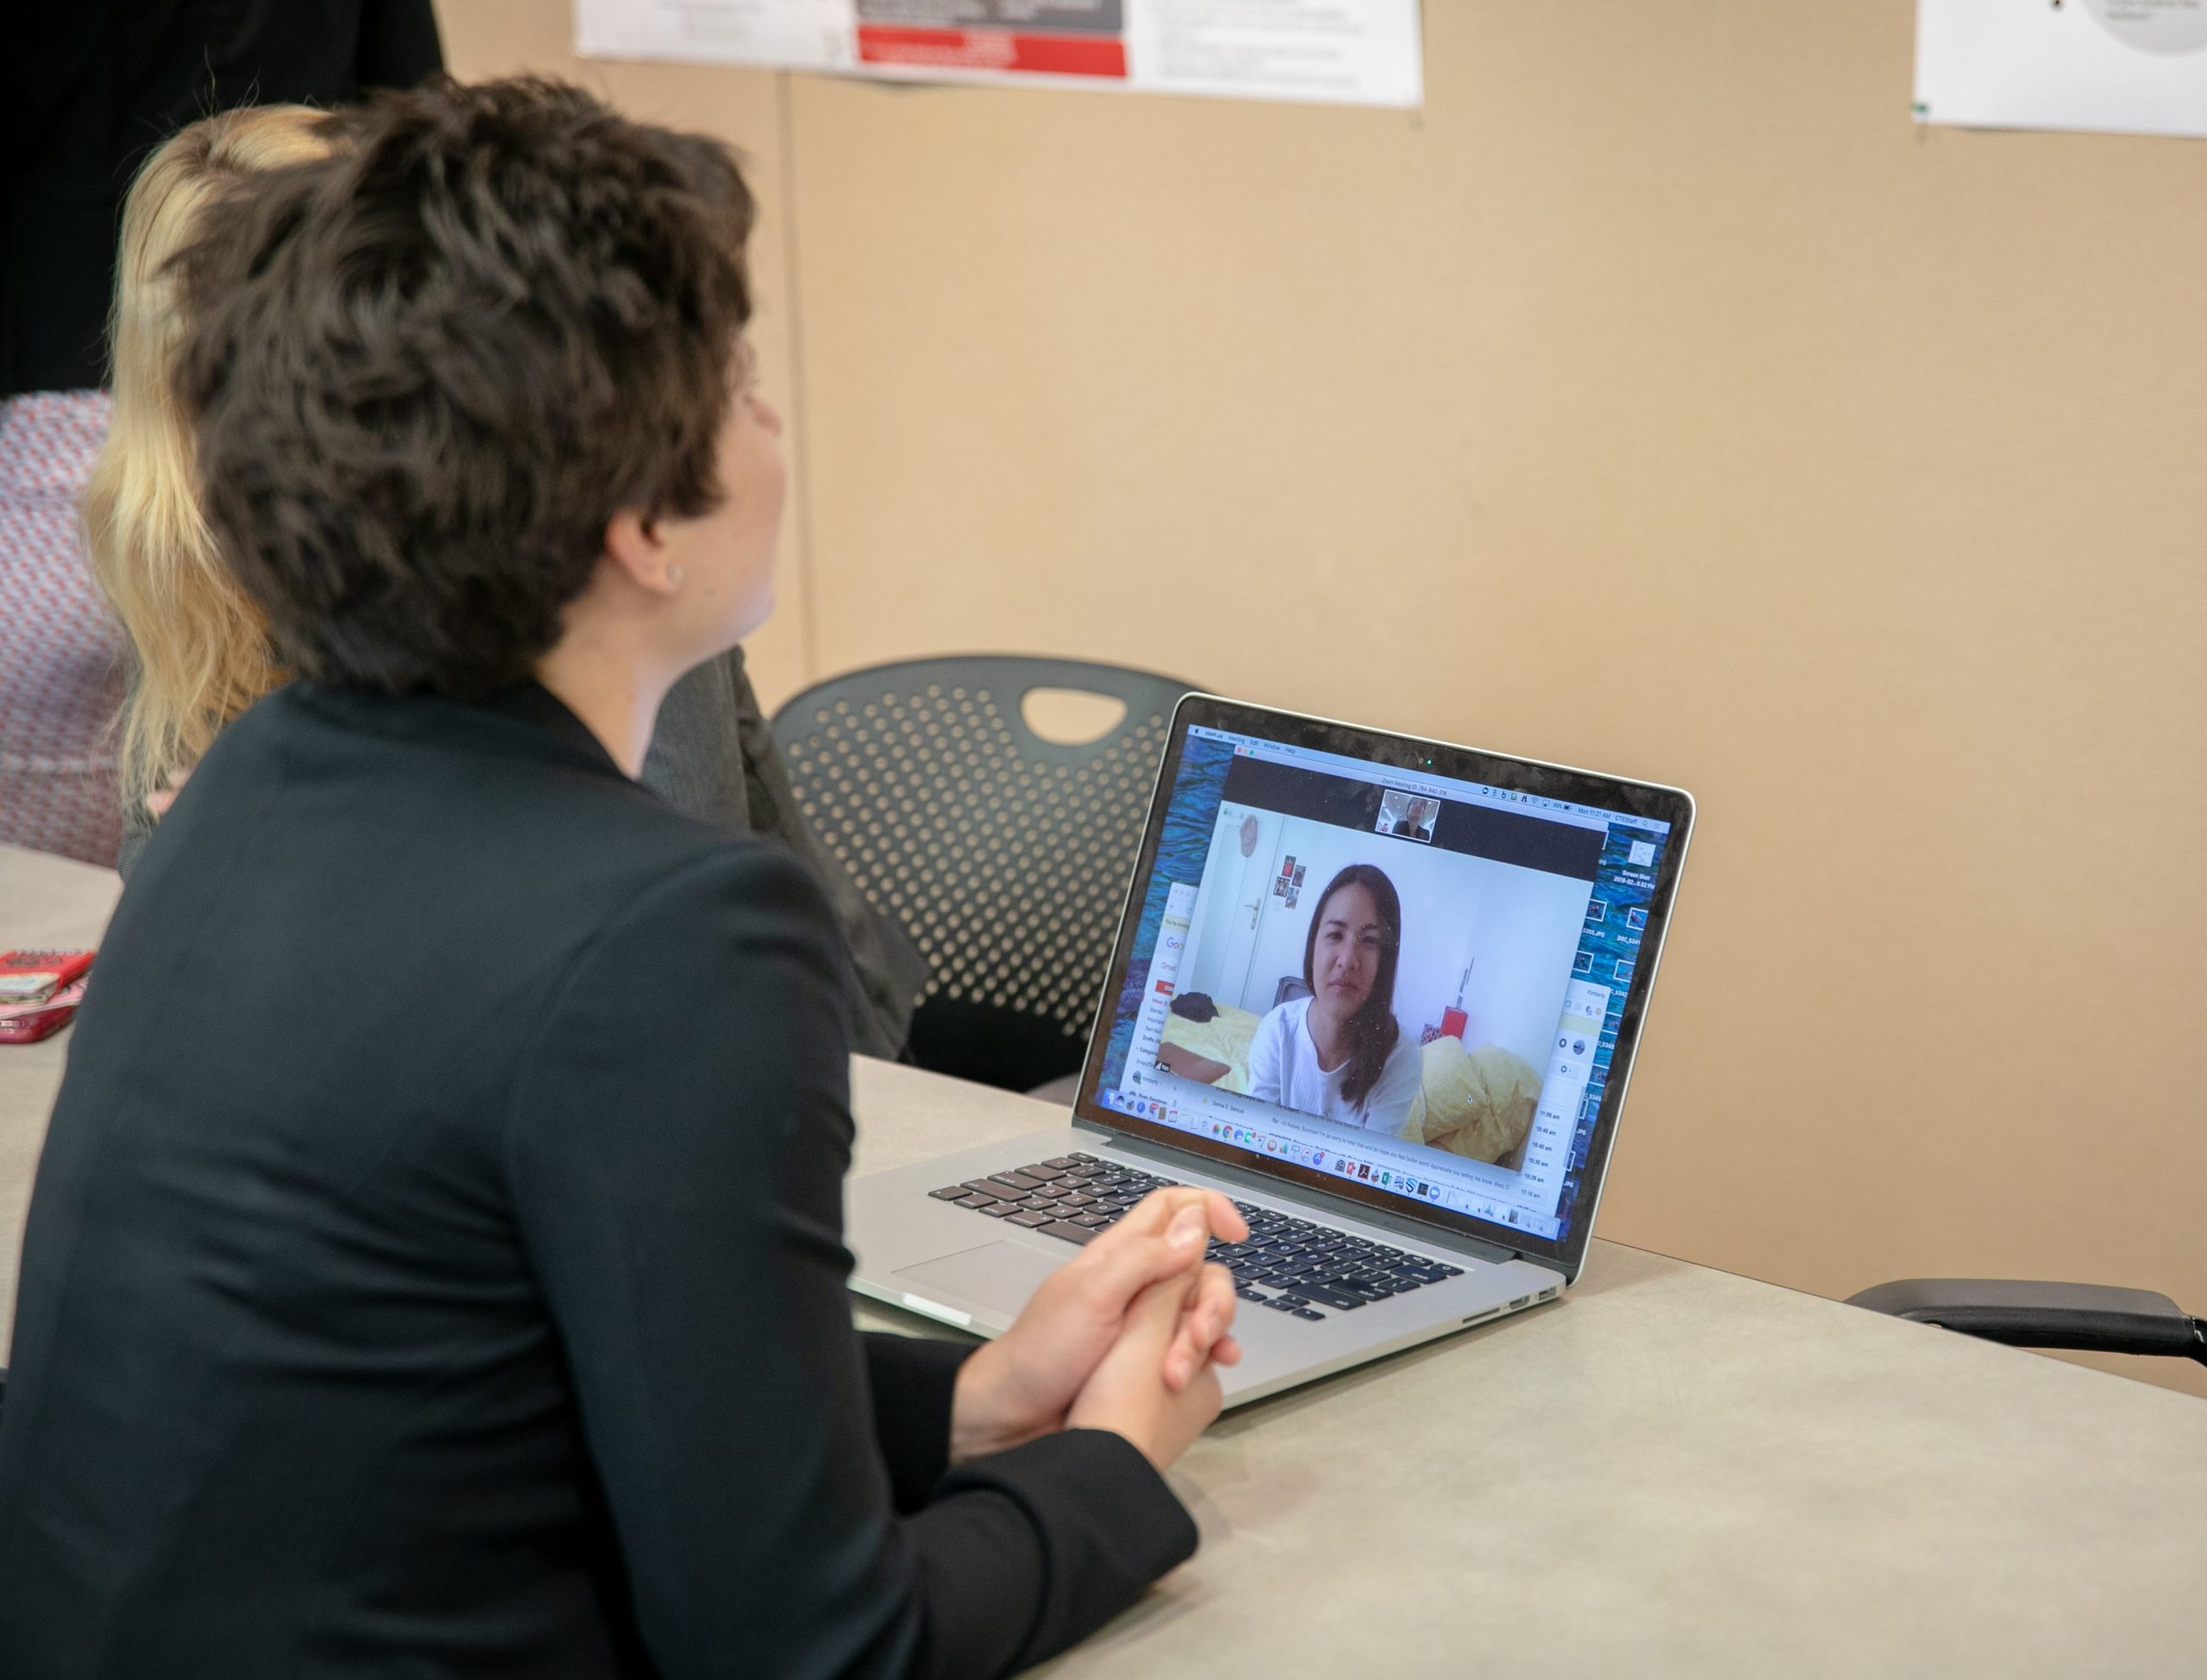 Alumna Emily Riddle speaks to a remote presenter on a laptop as she looks at their poster